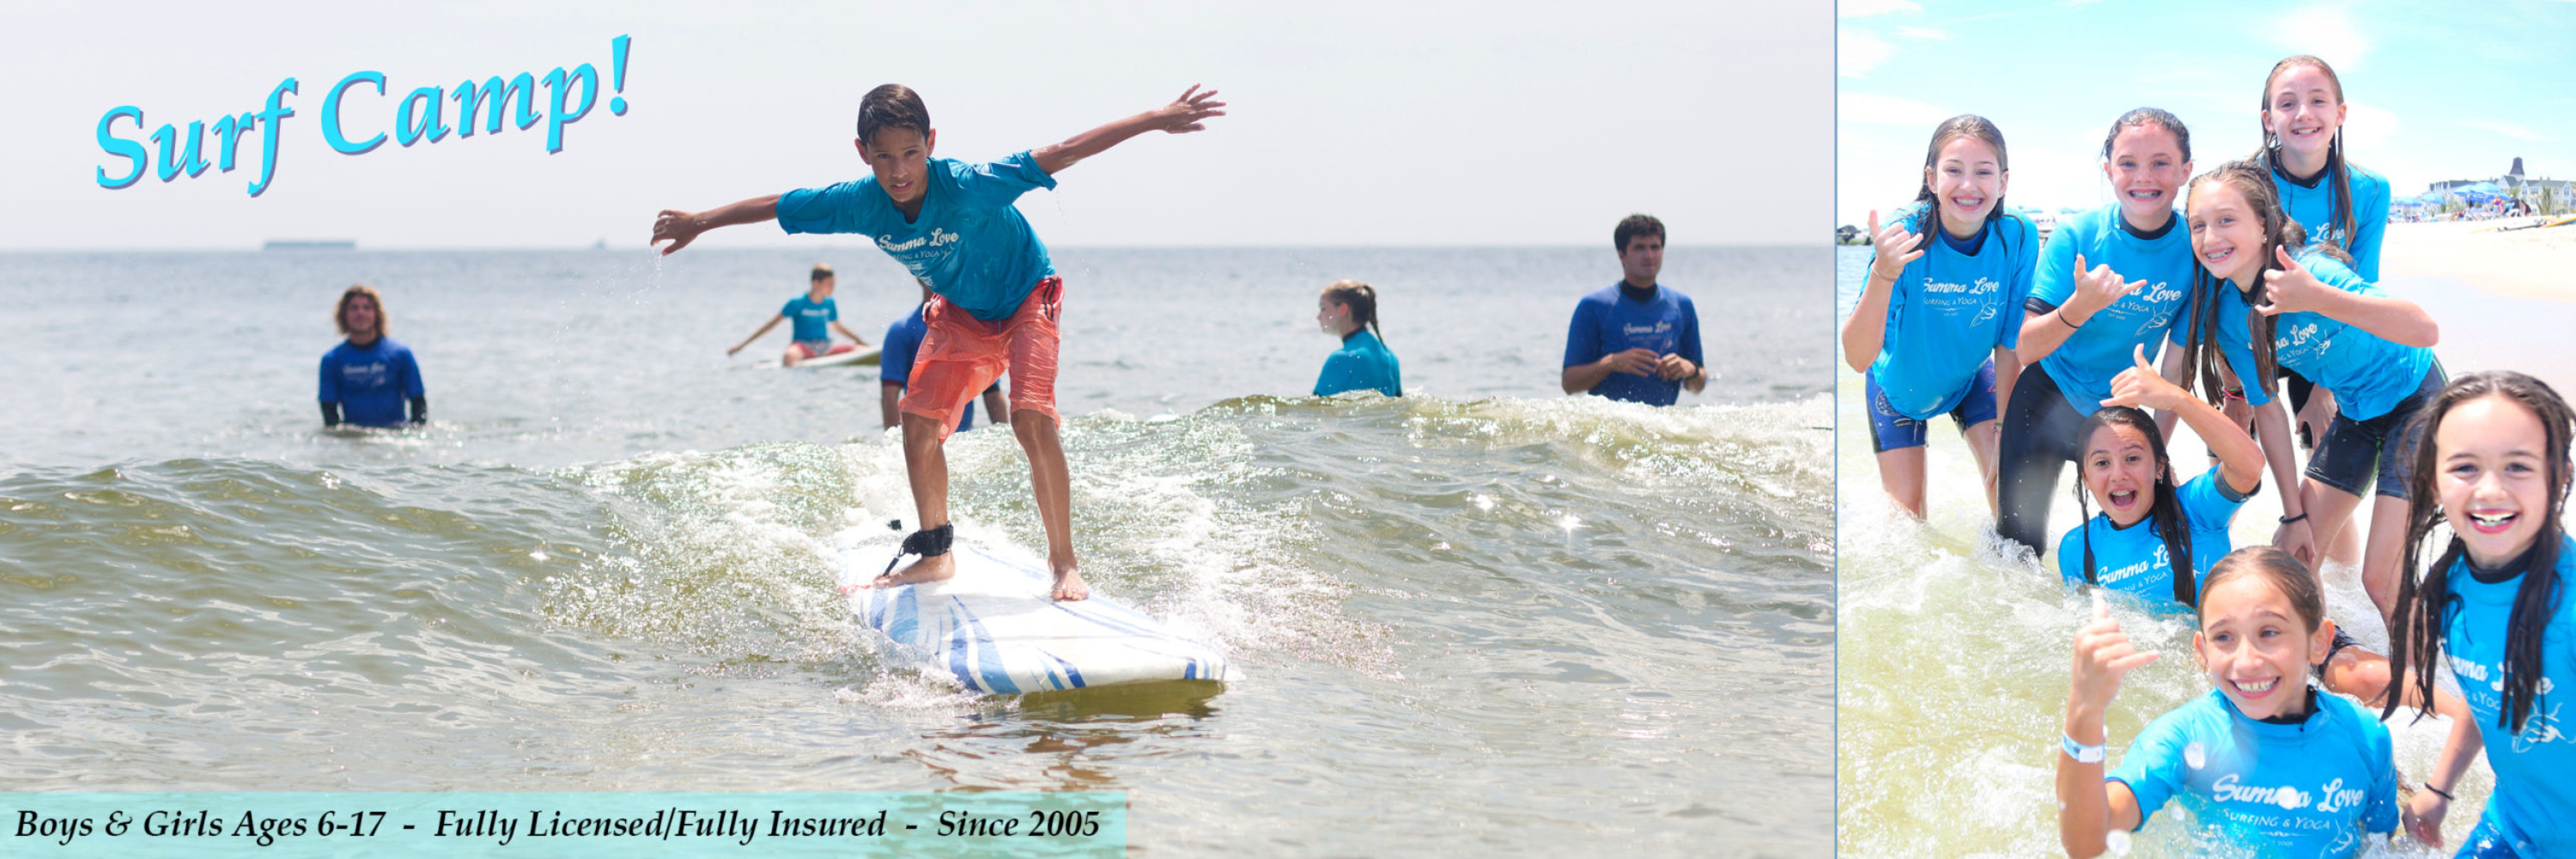 NJ Surf Camp, Surf School, Surf Lessons, Long Branch Surf Camp